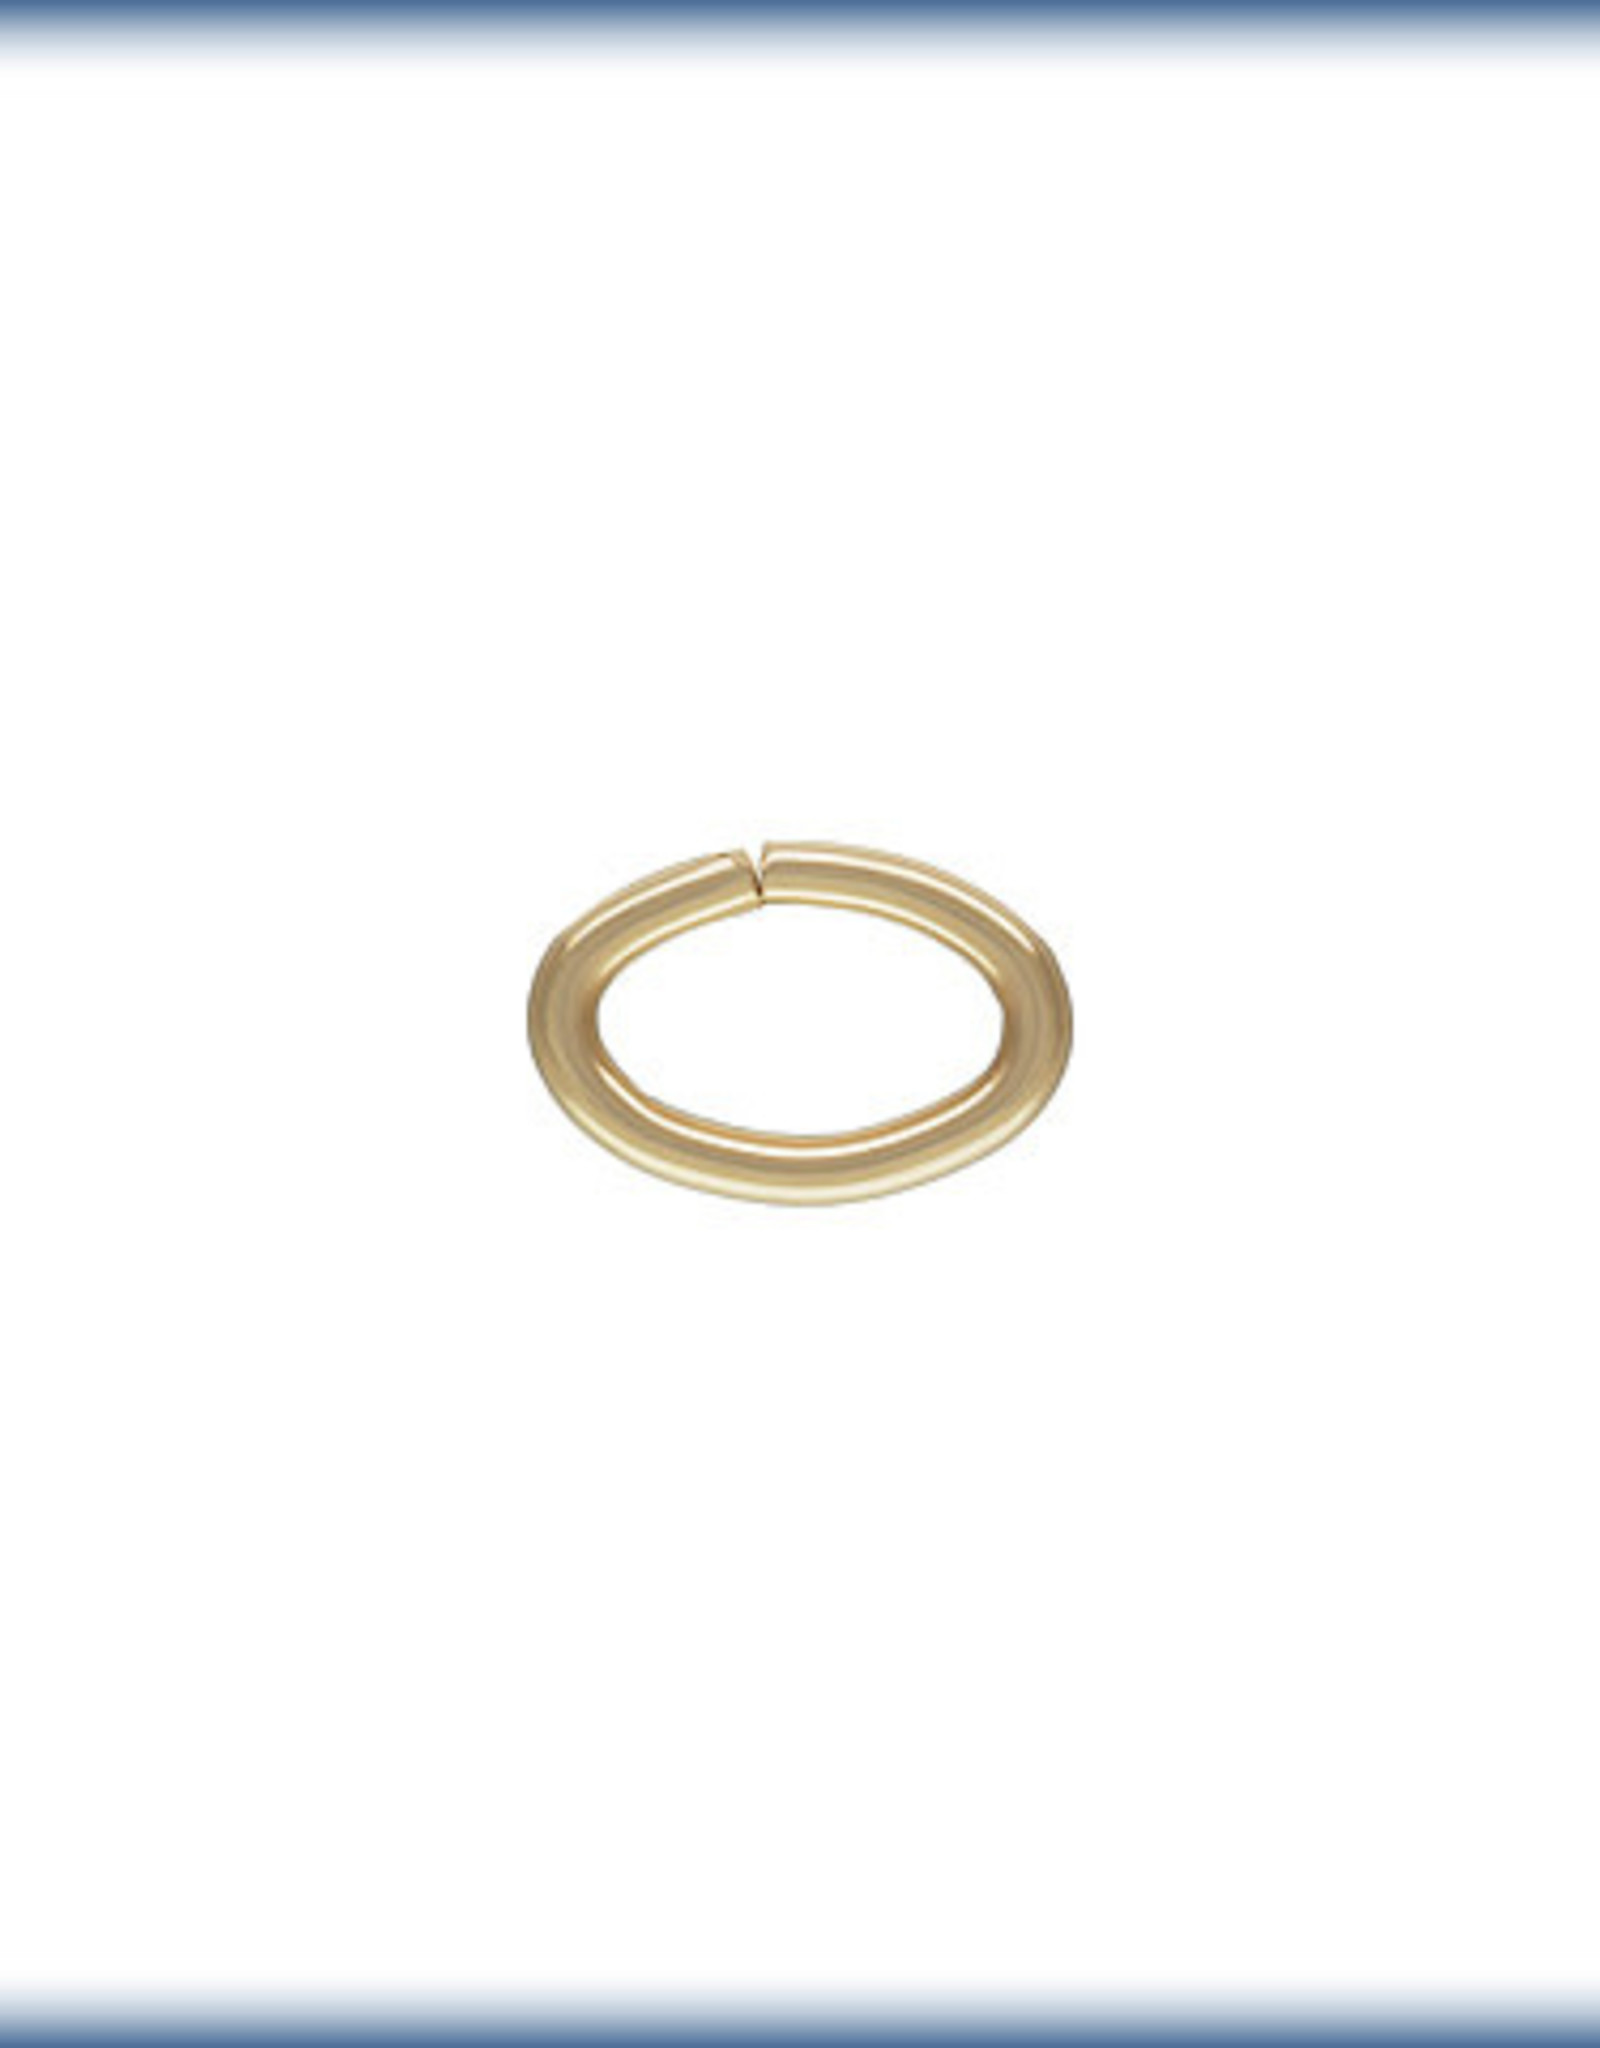 5x7mm Oval Jump Ring 14k Gold Filled Qty 10